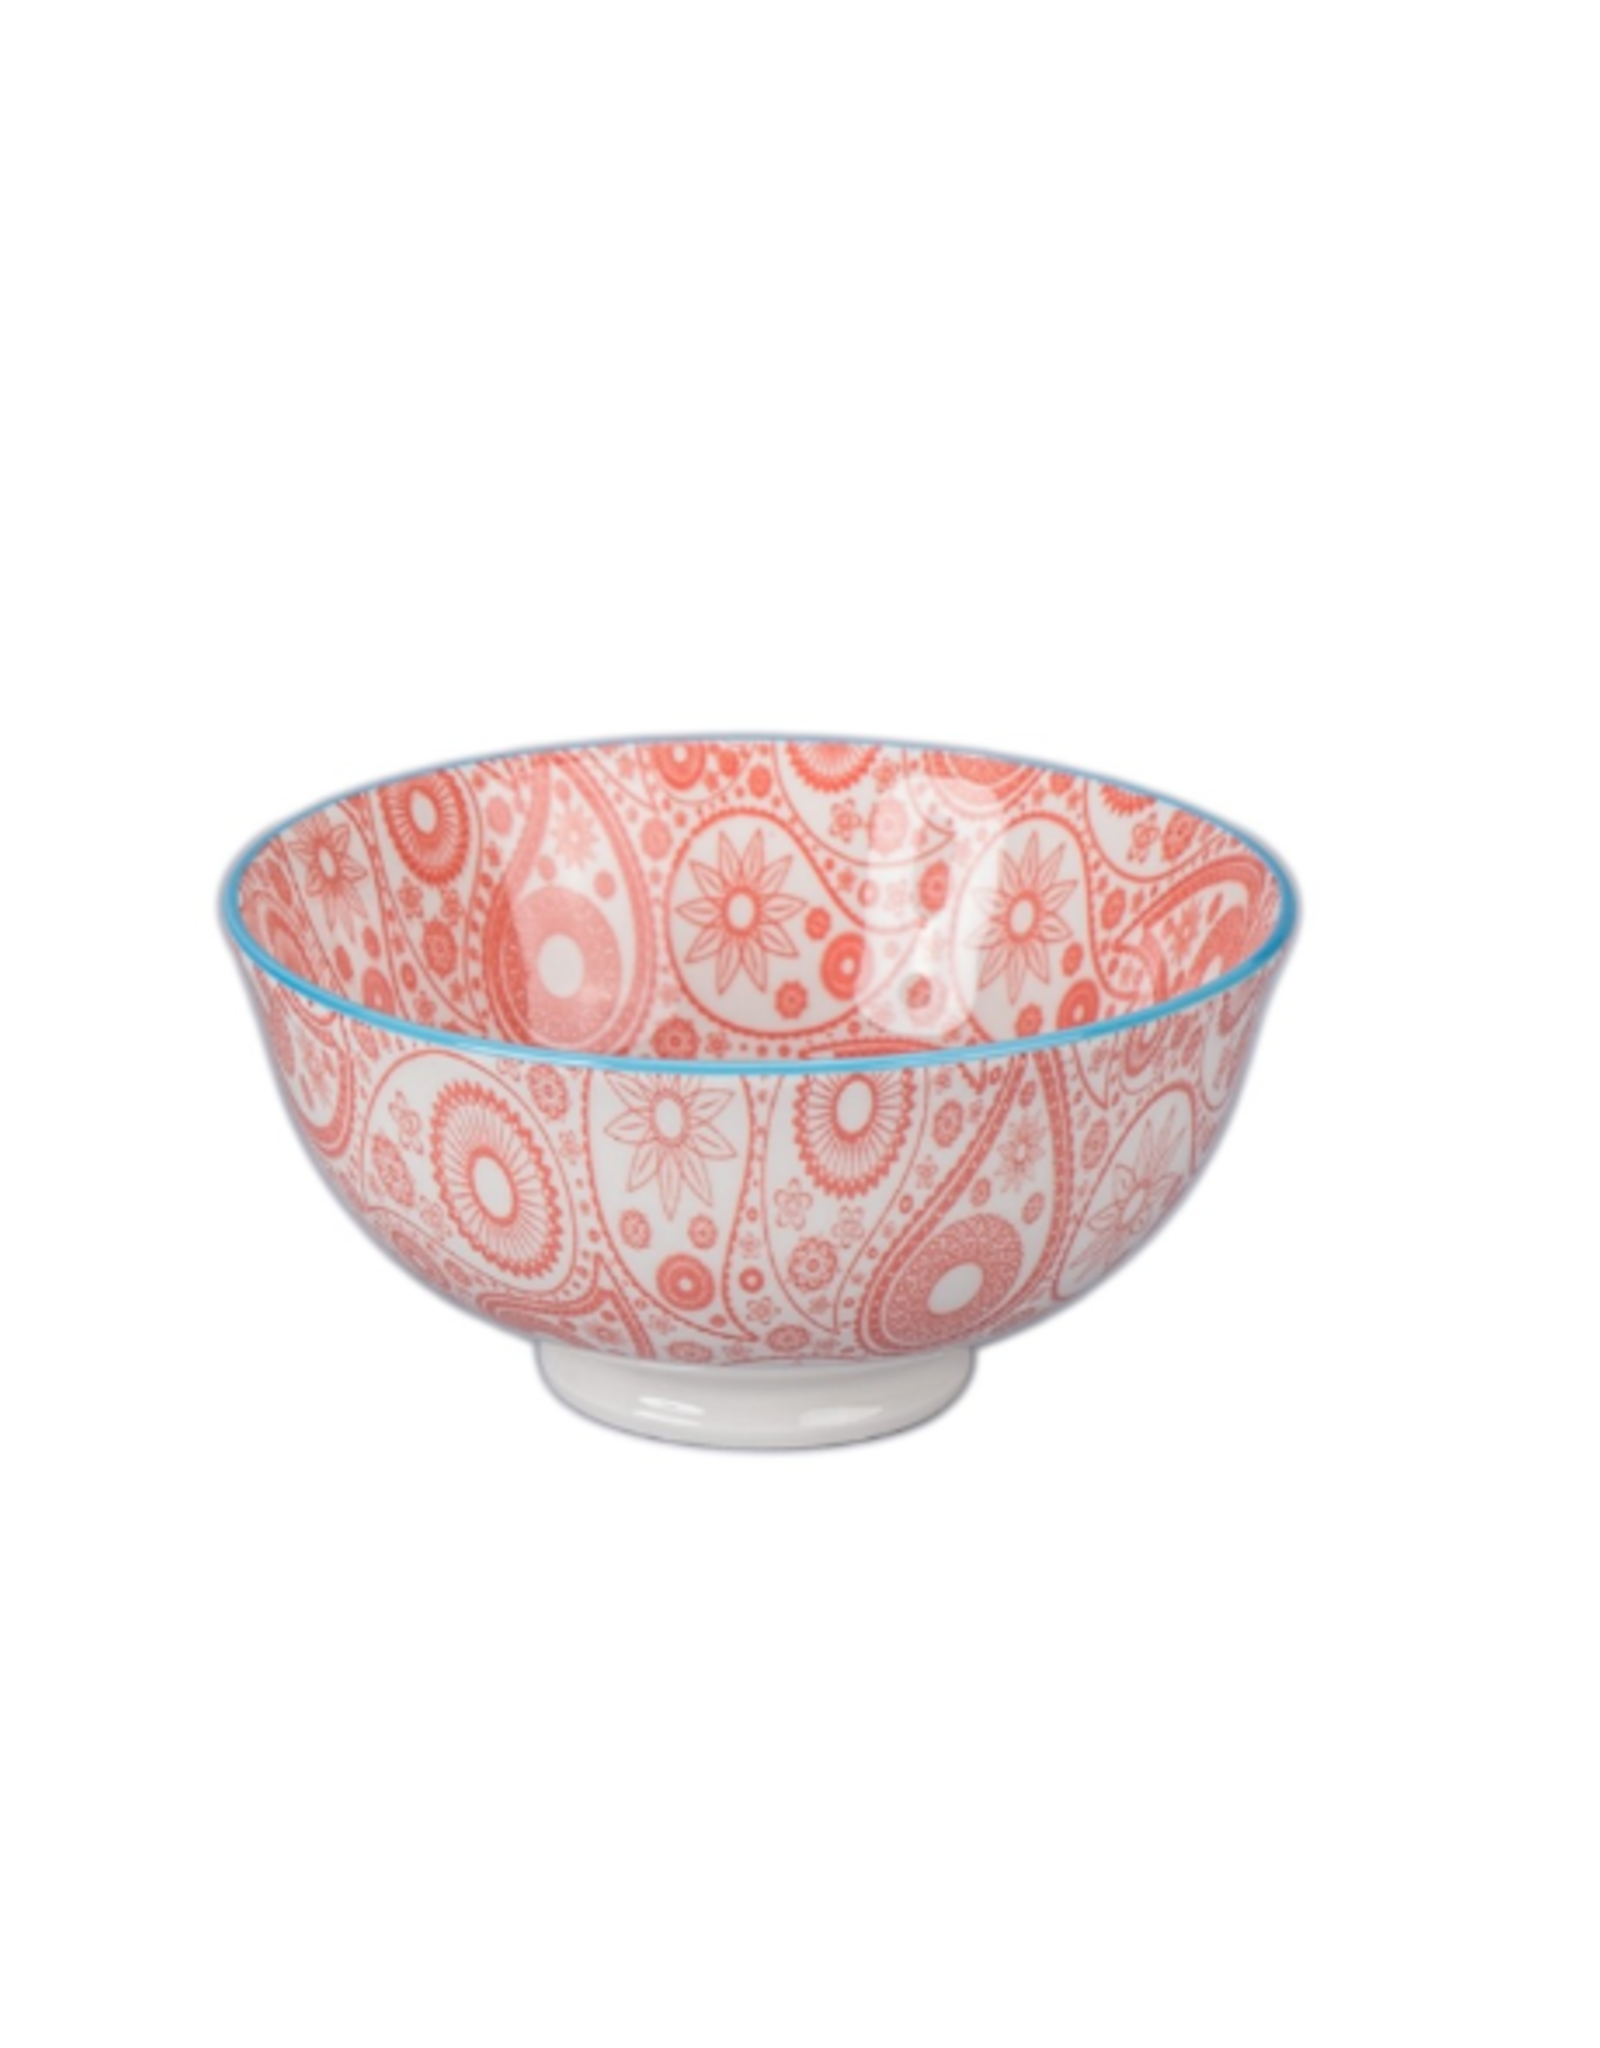 BIA Cordon Bleu Paisley Bowl, Red/Turq